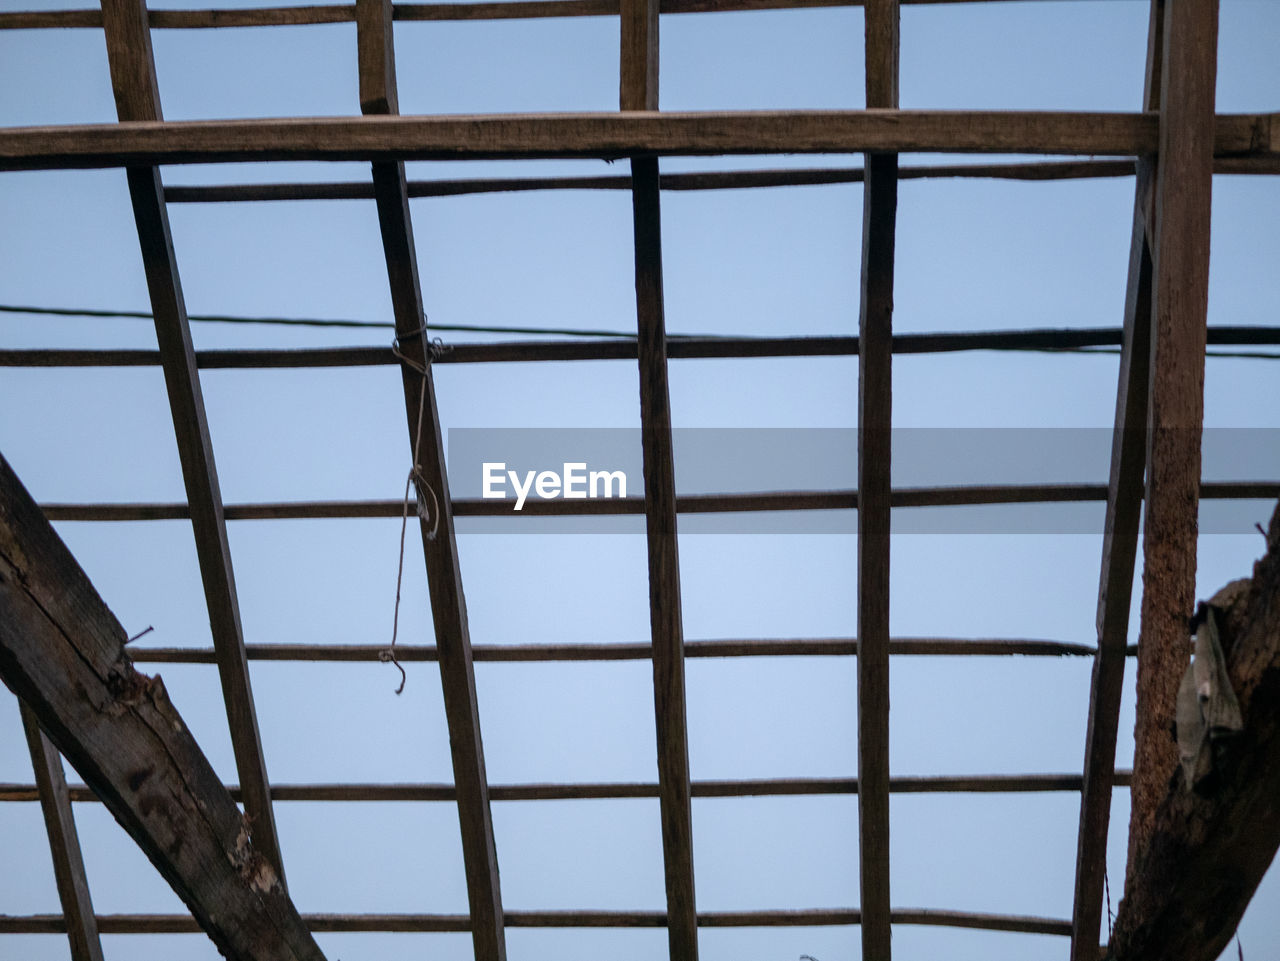 sky, built structure, architecture, no people, day, low angle view, metal, pattern, window, clear sky, nature, outdoors, glass - material, blue, close-up, building, roof, transparent, roof beam, girder